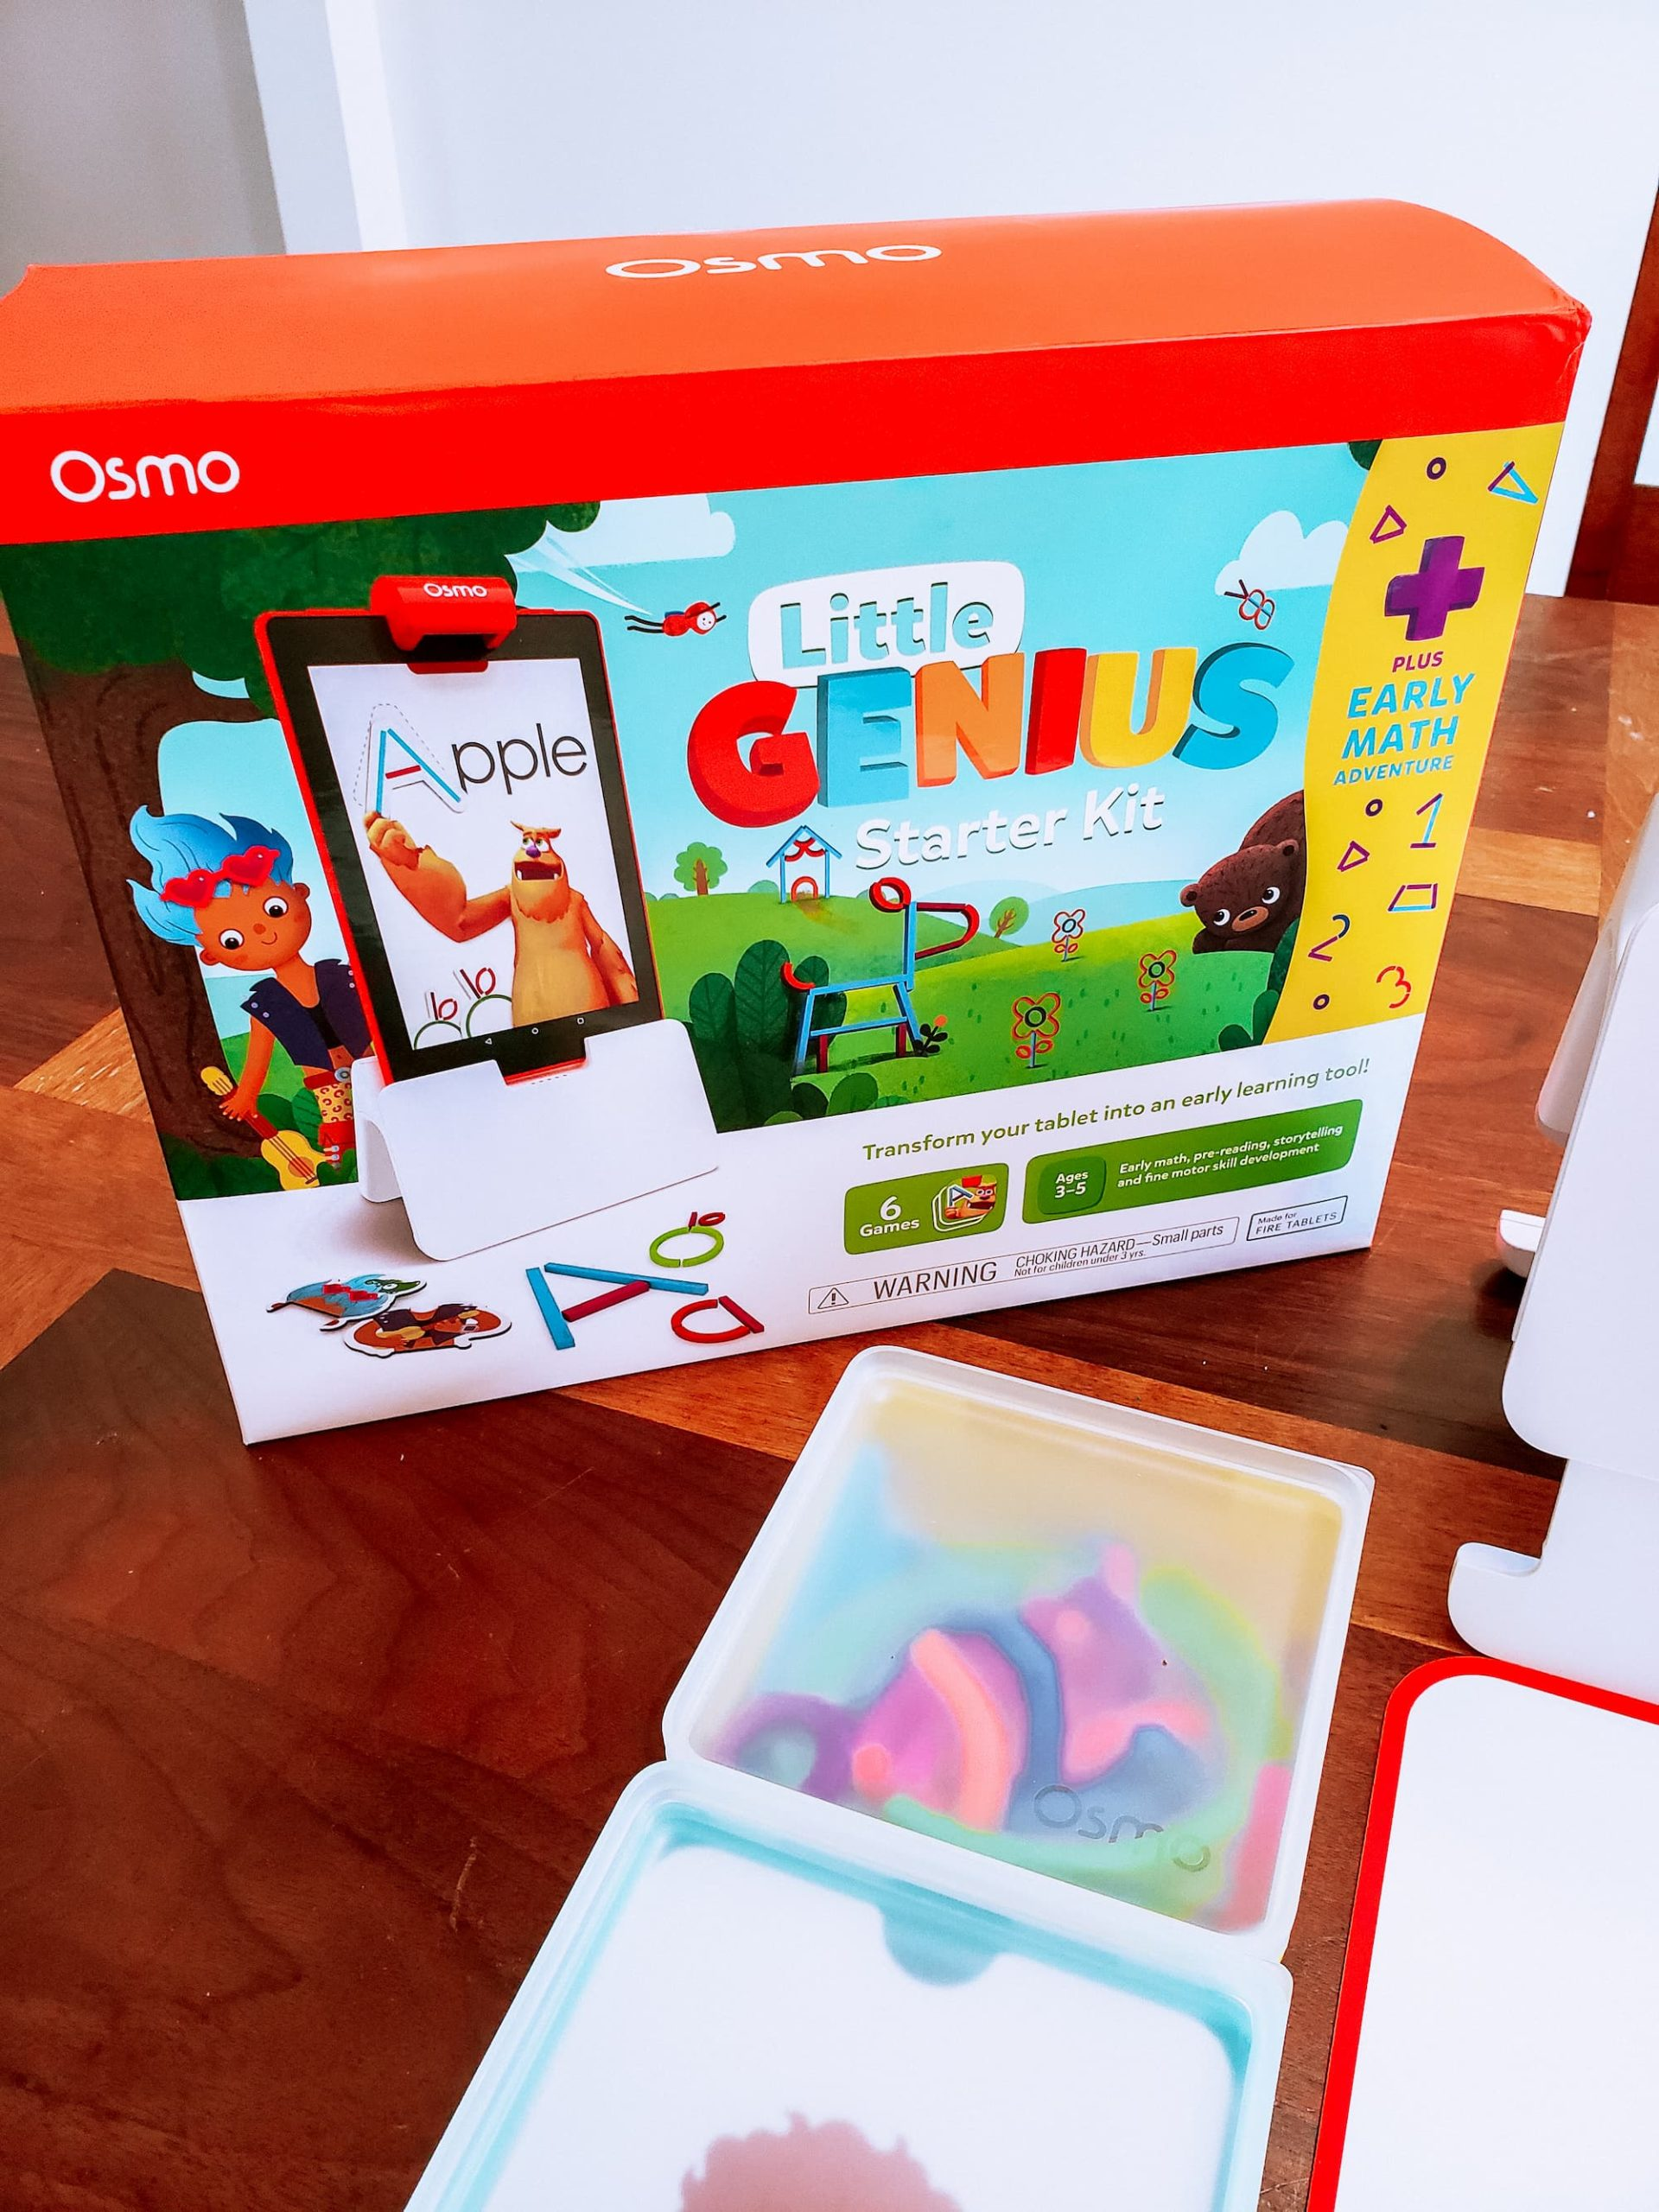 Little Genius Starter Kit Plus Early Math: New to Play Osmo!